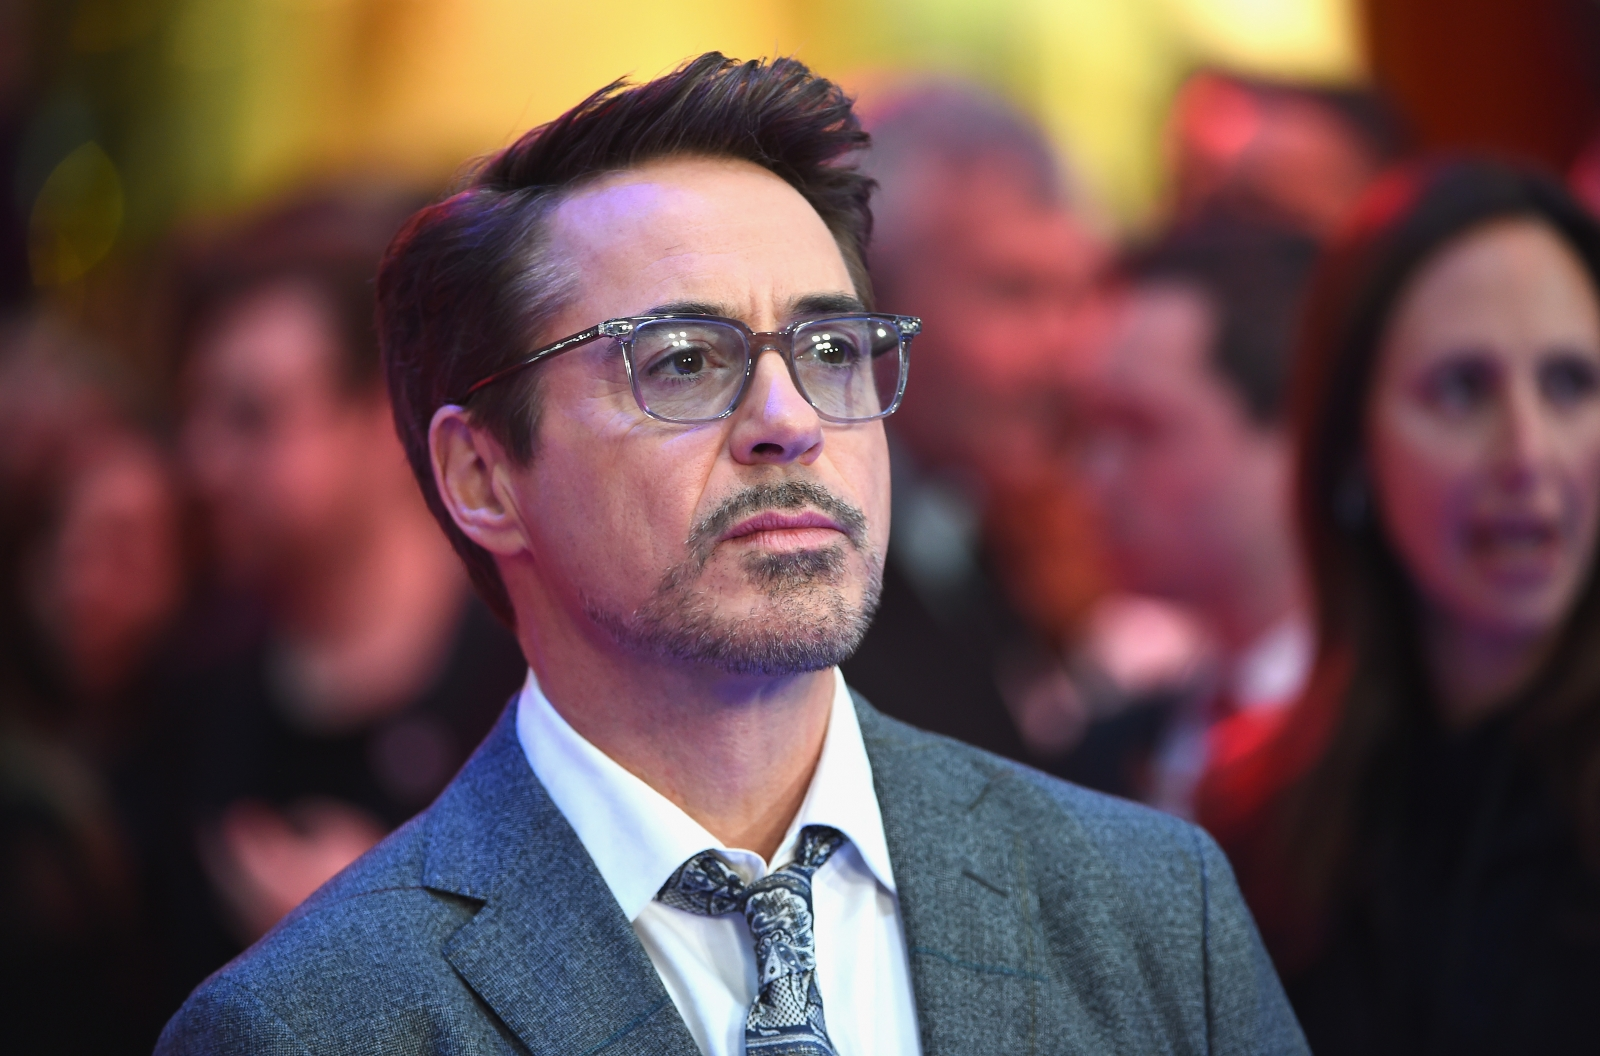 the early life and times of robert downey jr Film gossip robert downey jr was paid more than $1 million a minute for his role in 'spider-man: homecoming' the 53-year-old hollywood actor - who has played iron man since 2008 - appeared in the marvel movie for eight minutes, but raked up a profit of $10.